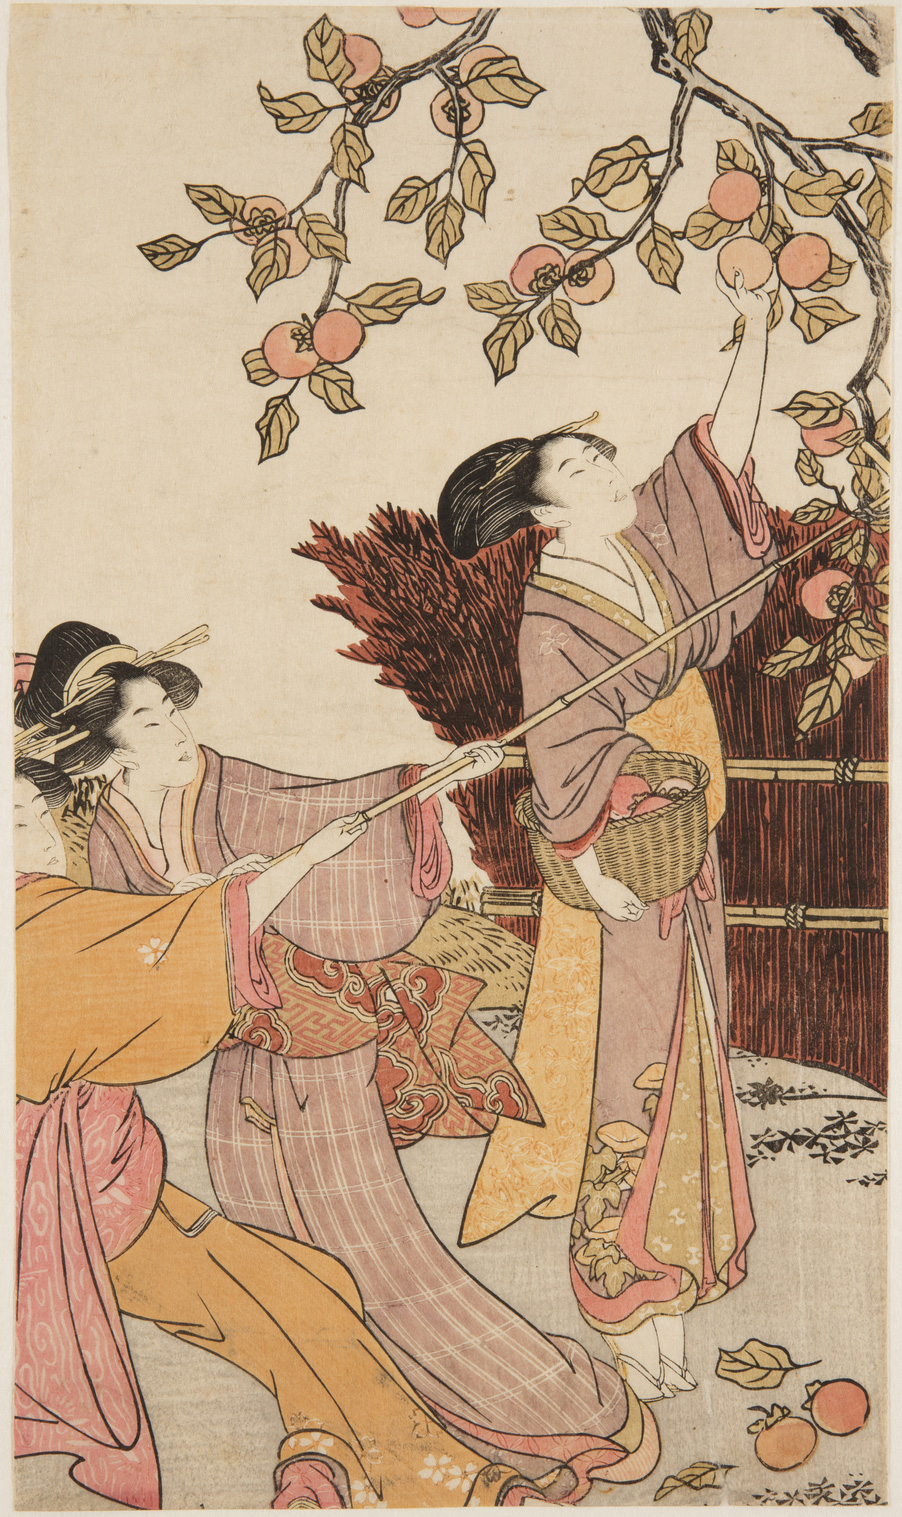 Japanese print of three men dressed in traditional clothes harvesting persimmon fruit from a tree, two pull the branches down and the other plucks the fruit from the tree.